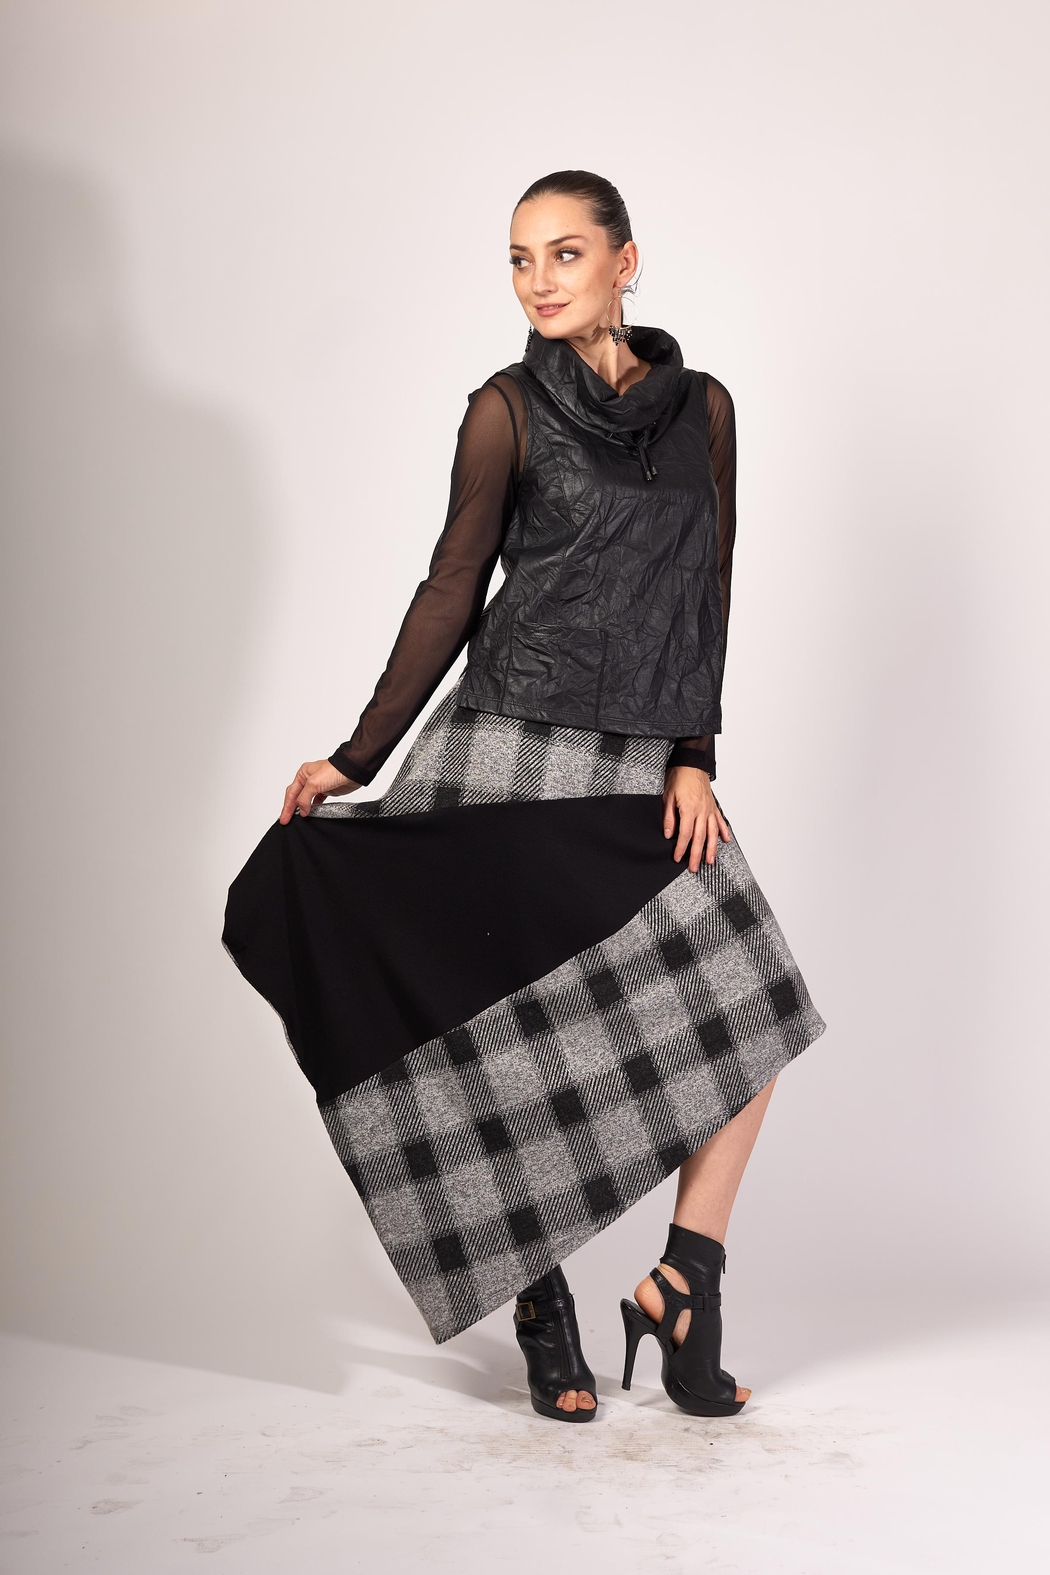 Matti Mamane Asymmetrical Black And Checker Grey Skirt - Front Full Image